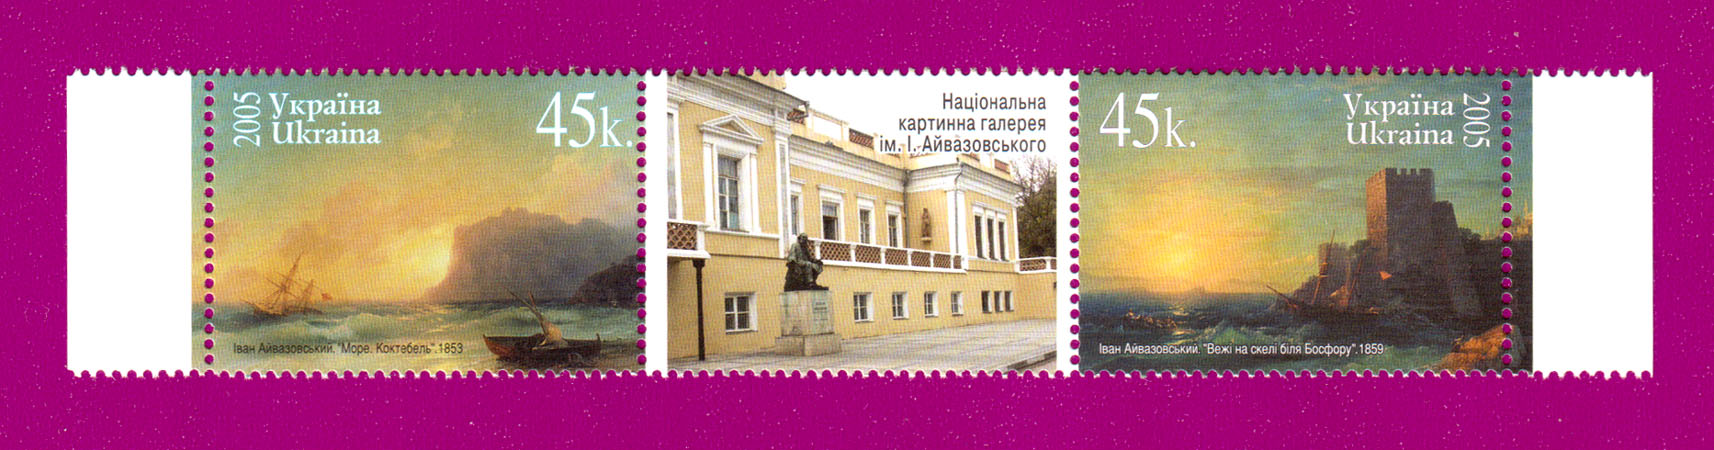 Ukraine stamps Coupling National Picture Gallery of I.Ajvazovsky with coupons